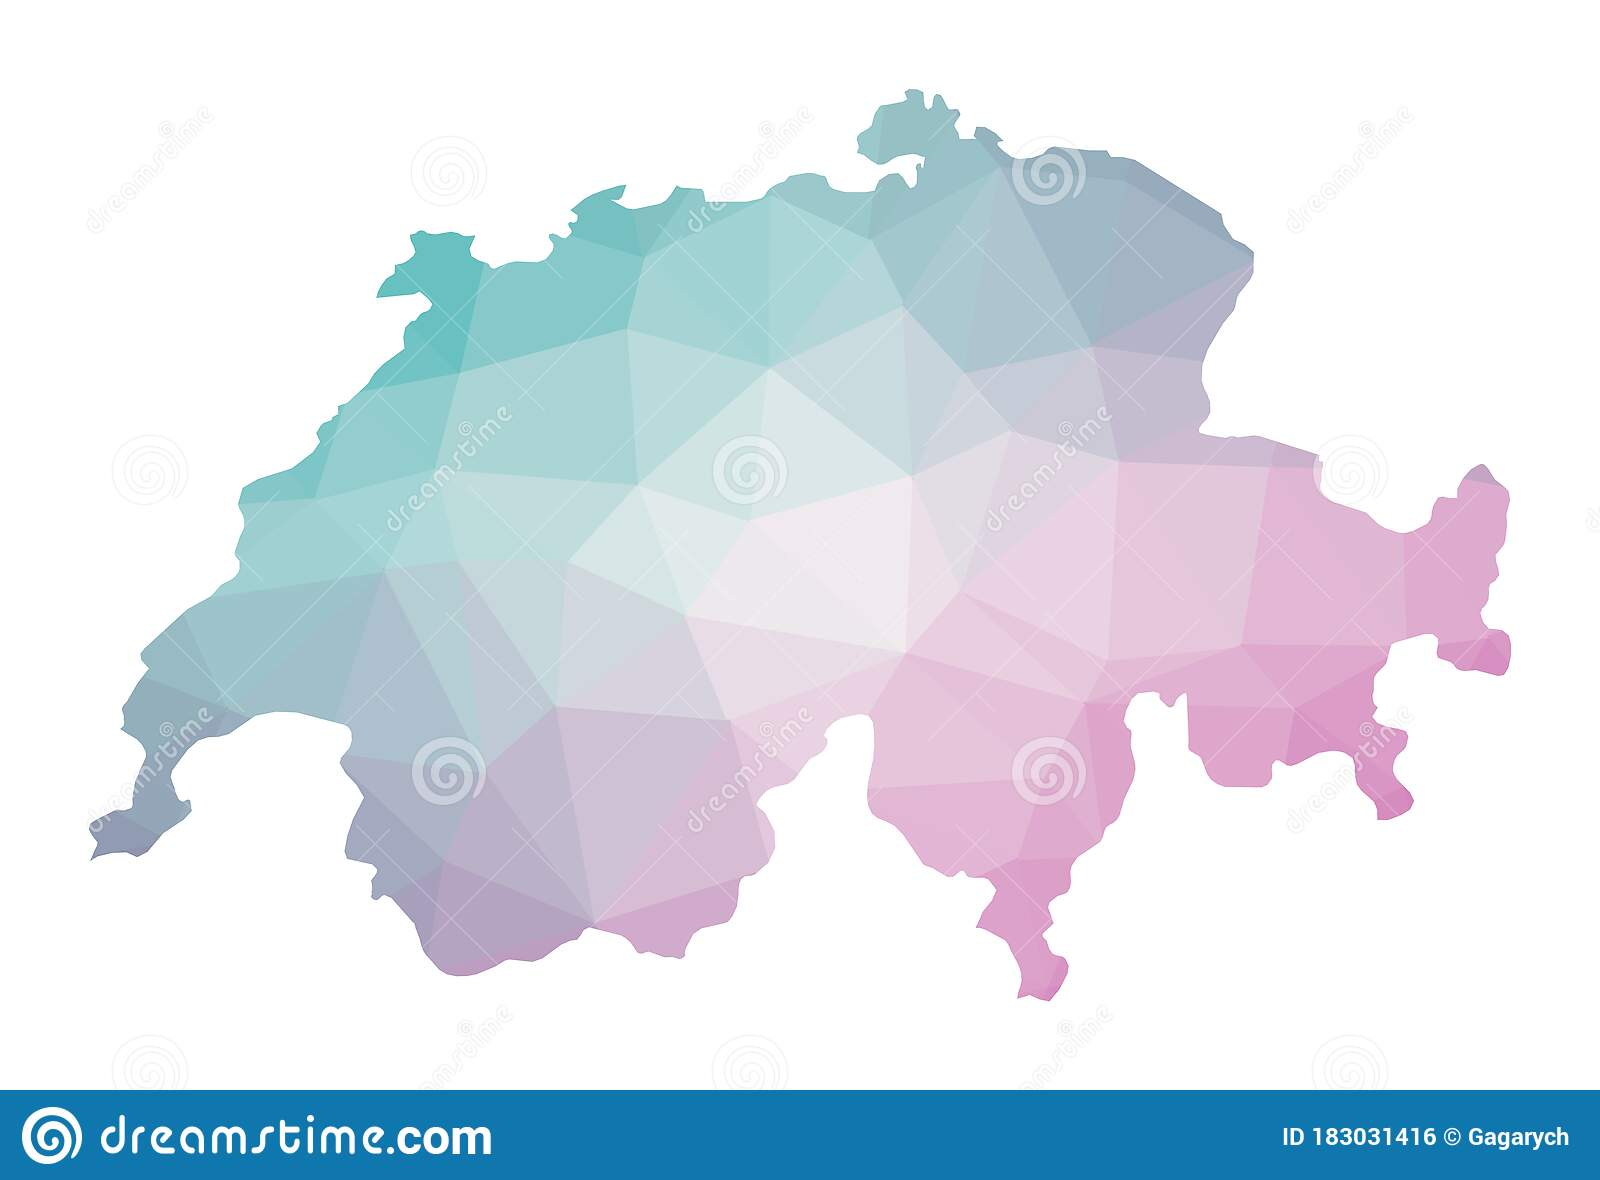 Picture of: Polygonal Map Of Switzerland Stock Vector Illustration Of Border Outline 183031416